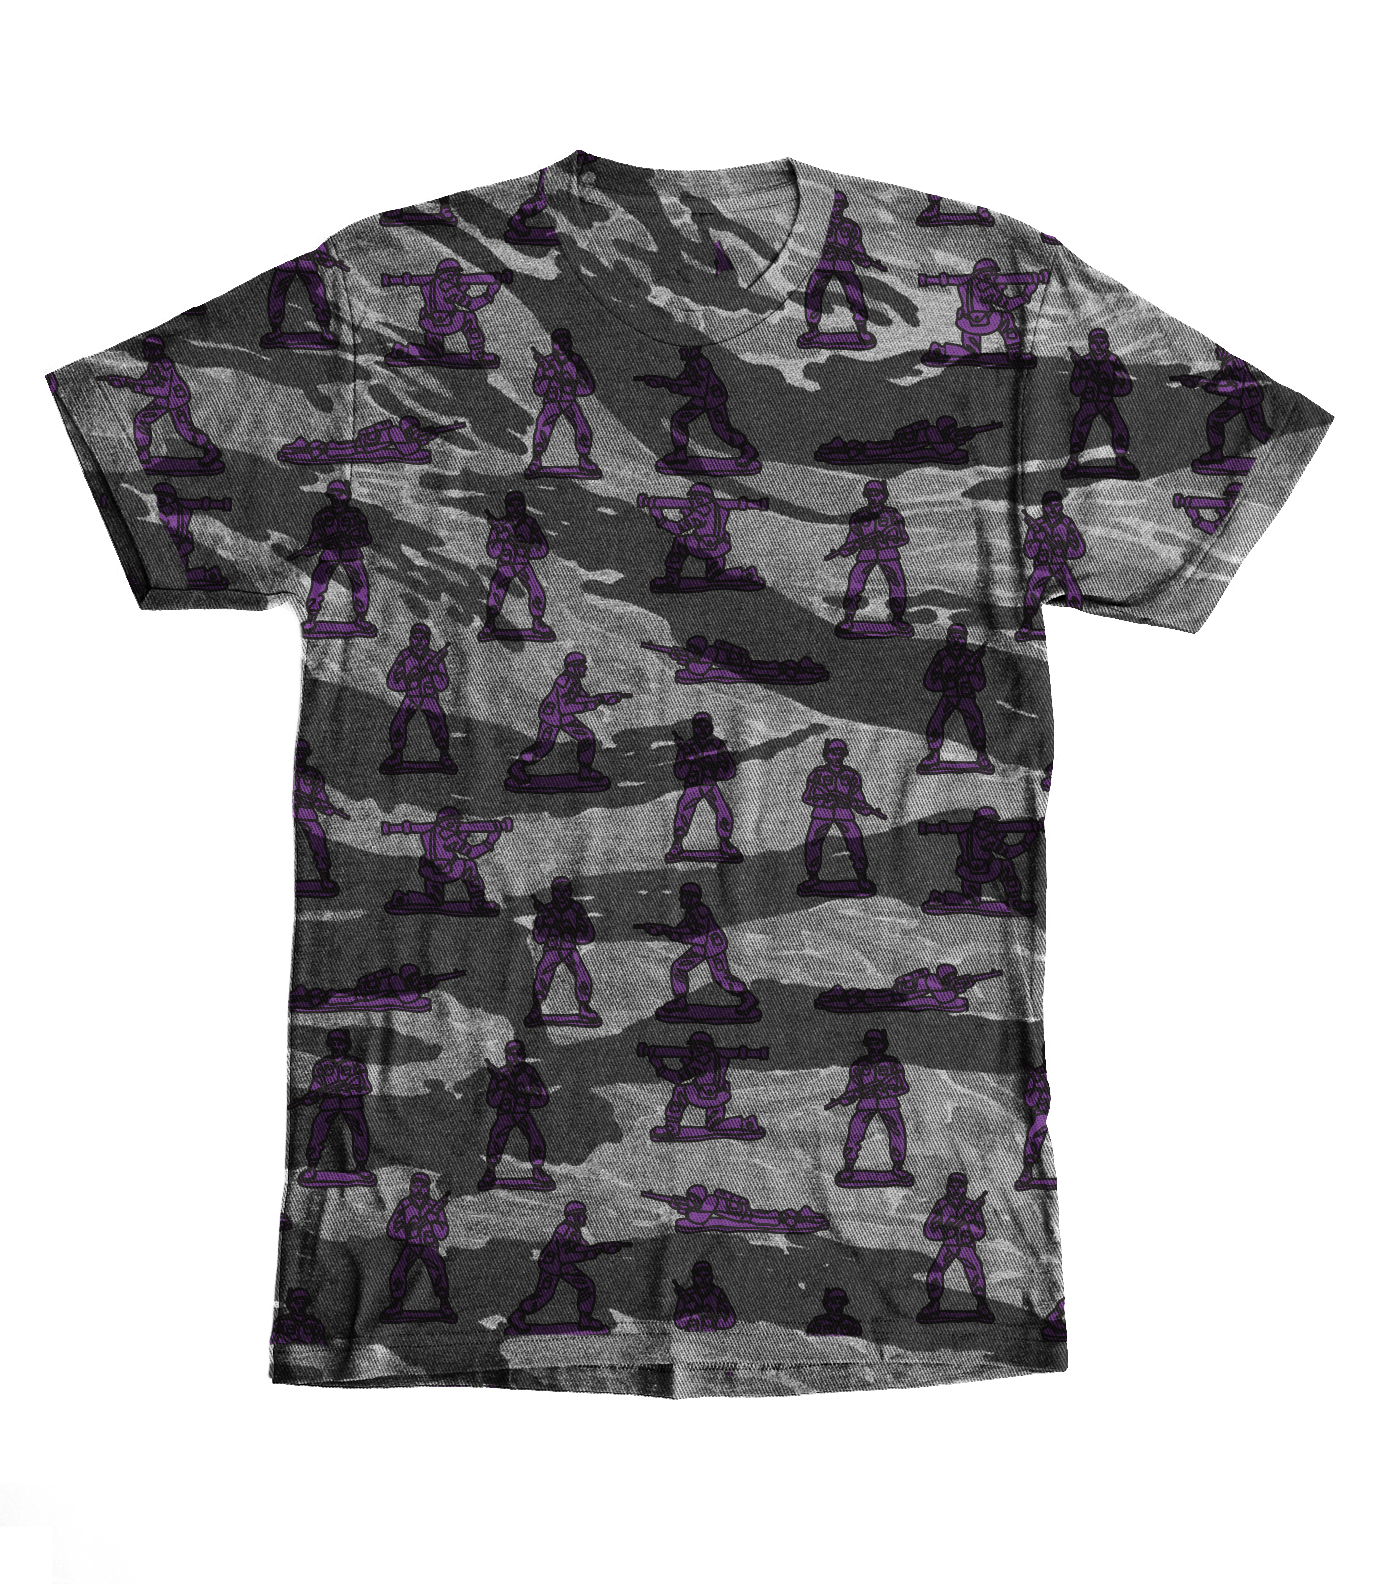 Toy-Soldier-Tee-Shirt-Gray.jpg